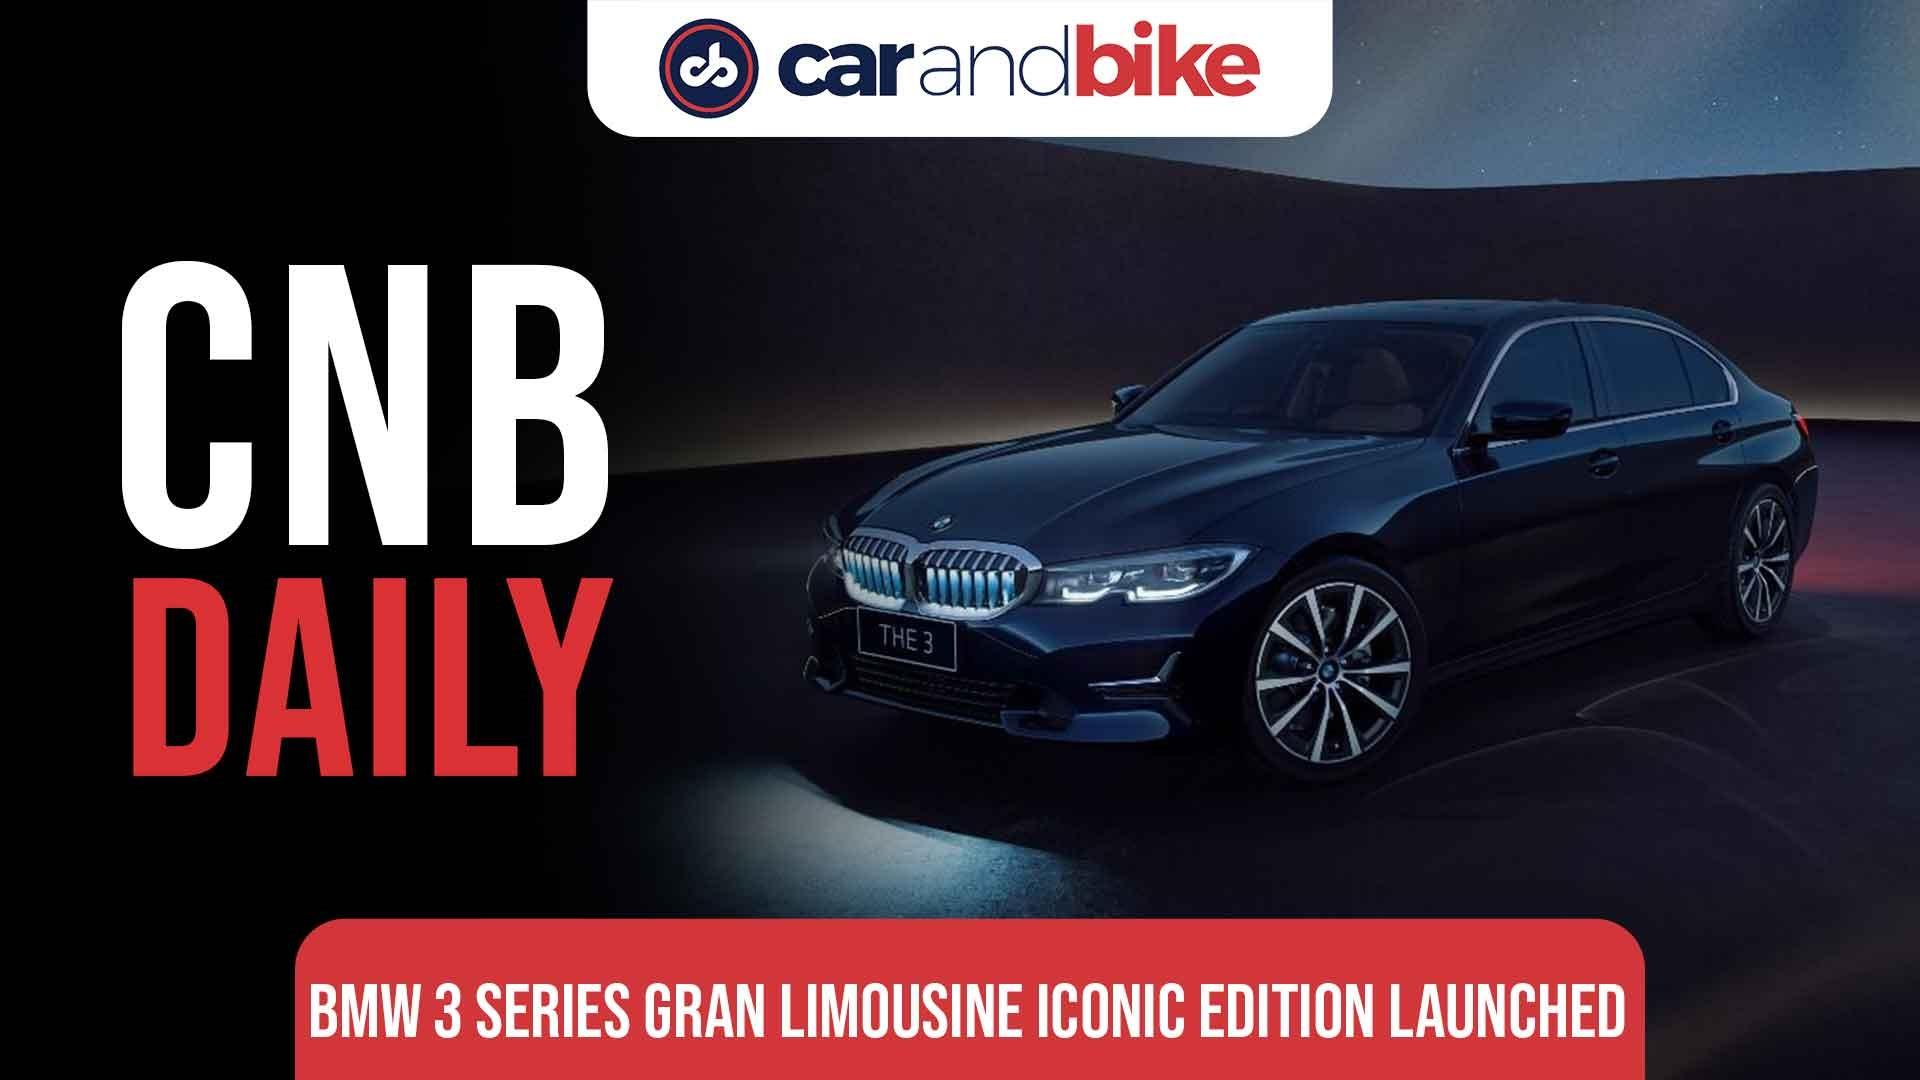 BMW 3 series GL iconic edition launched in India